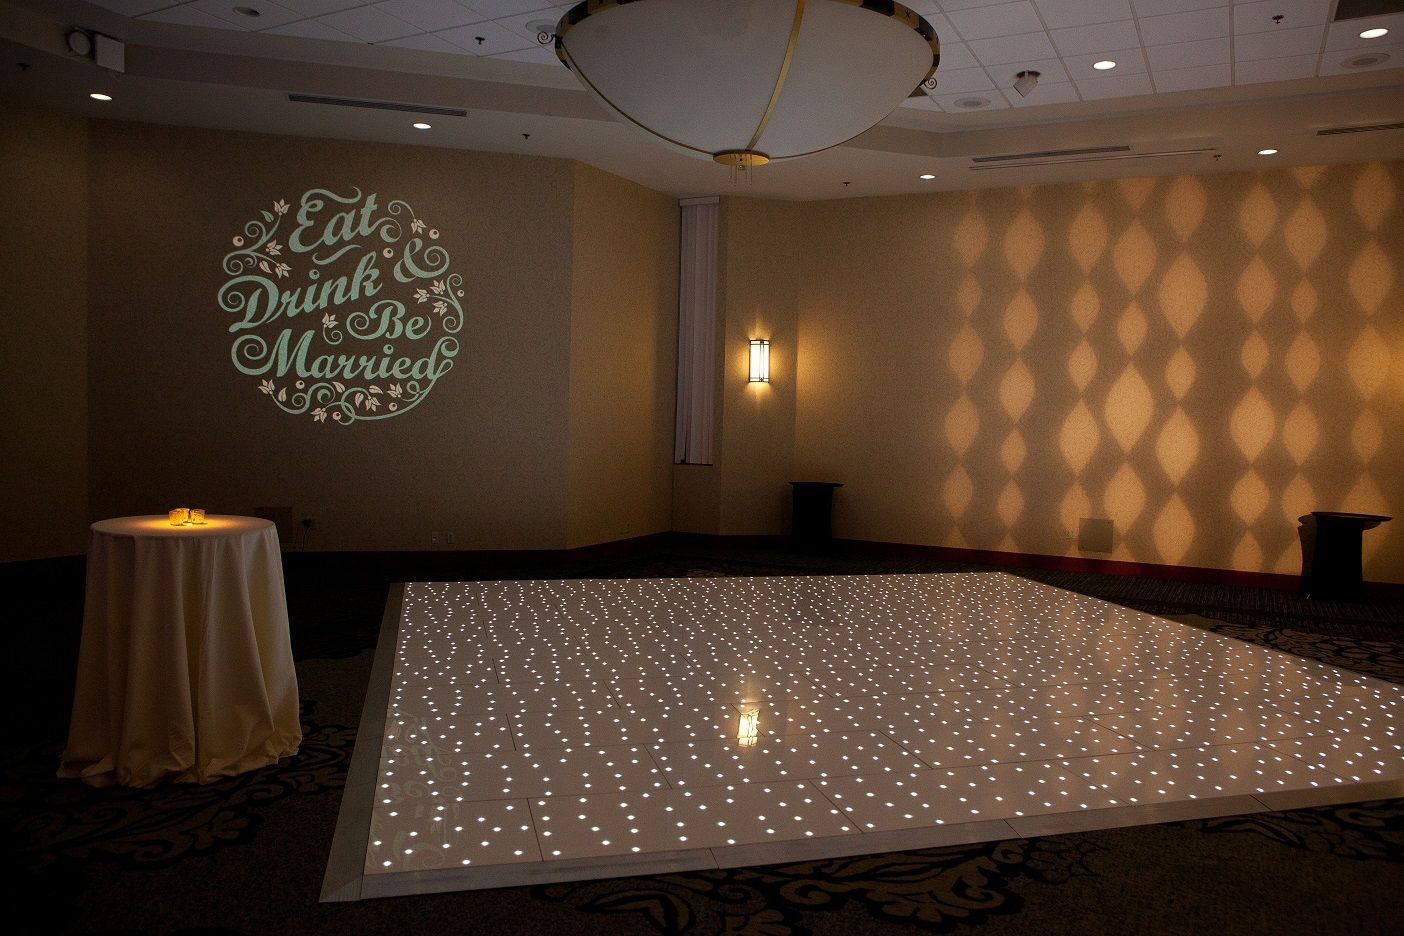 Monogram Starlight Dance Floor and Wash Light on the wall provided by Sound Wave Events! Boise u0026 Salt Lake City Wedding DJ - Lighting - Dance Floor - Photo ... & Monogram Starlight Dance Floor and Wash Light on the wall ... azcodes.com